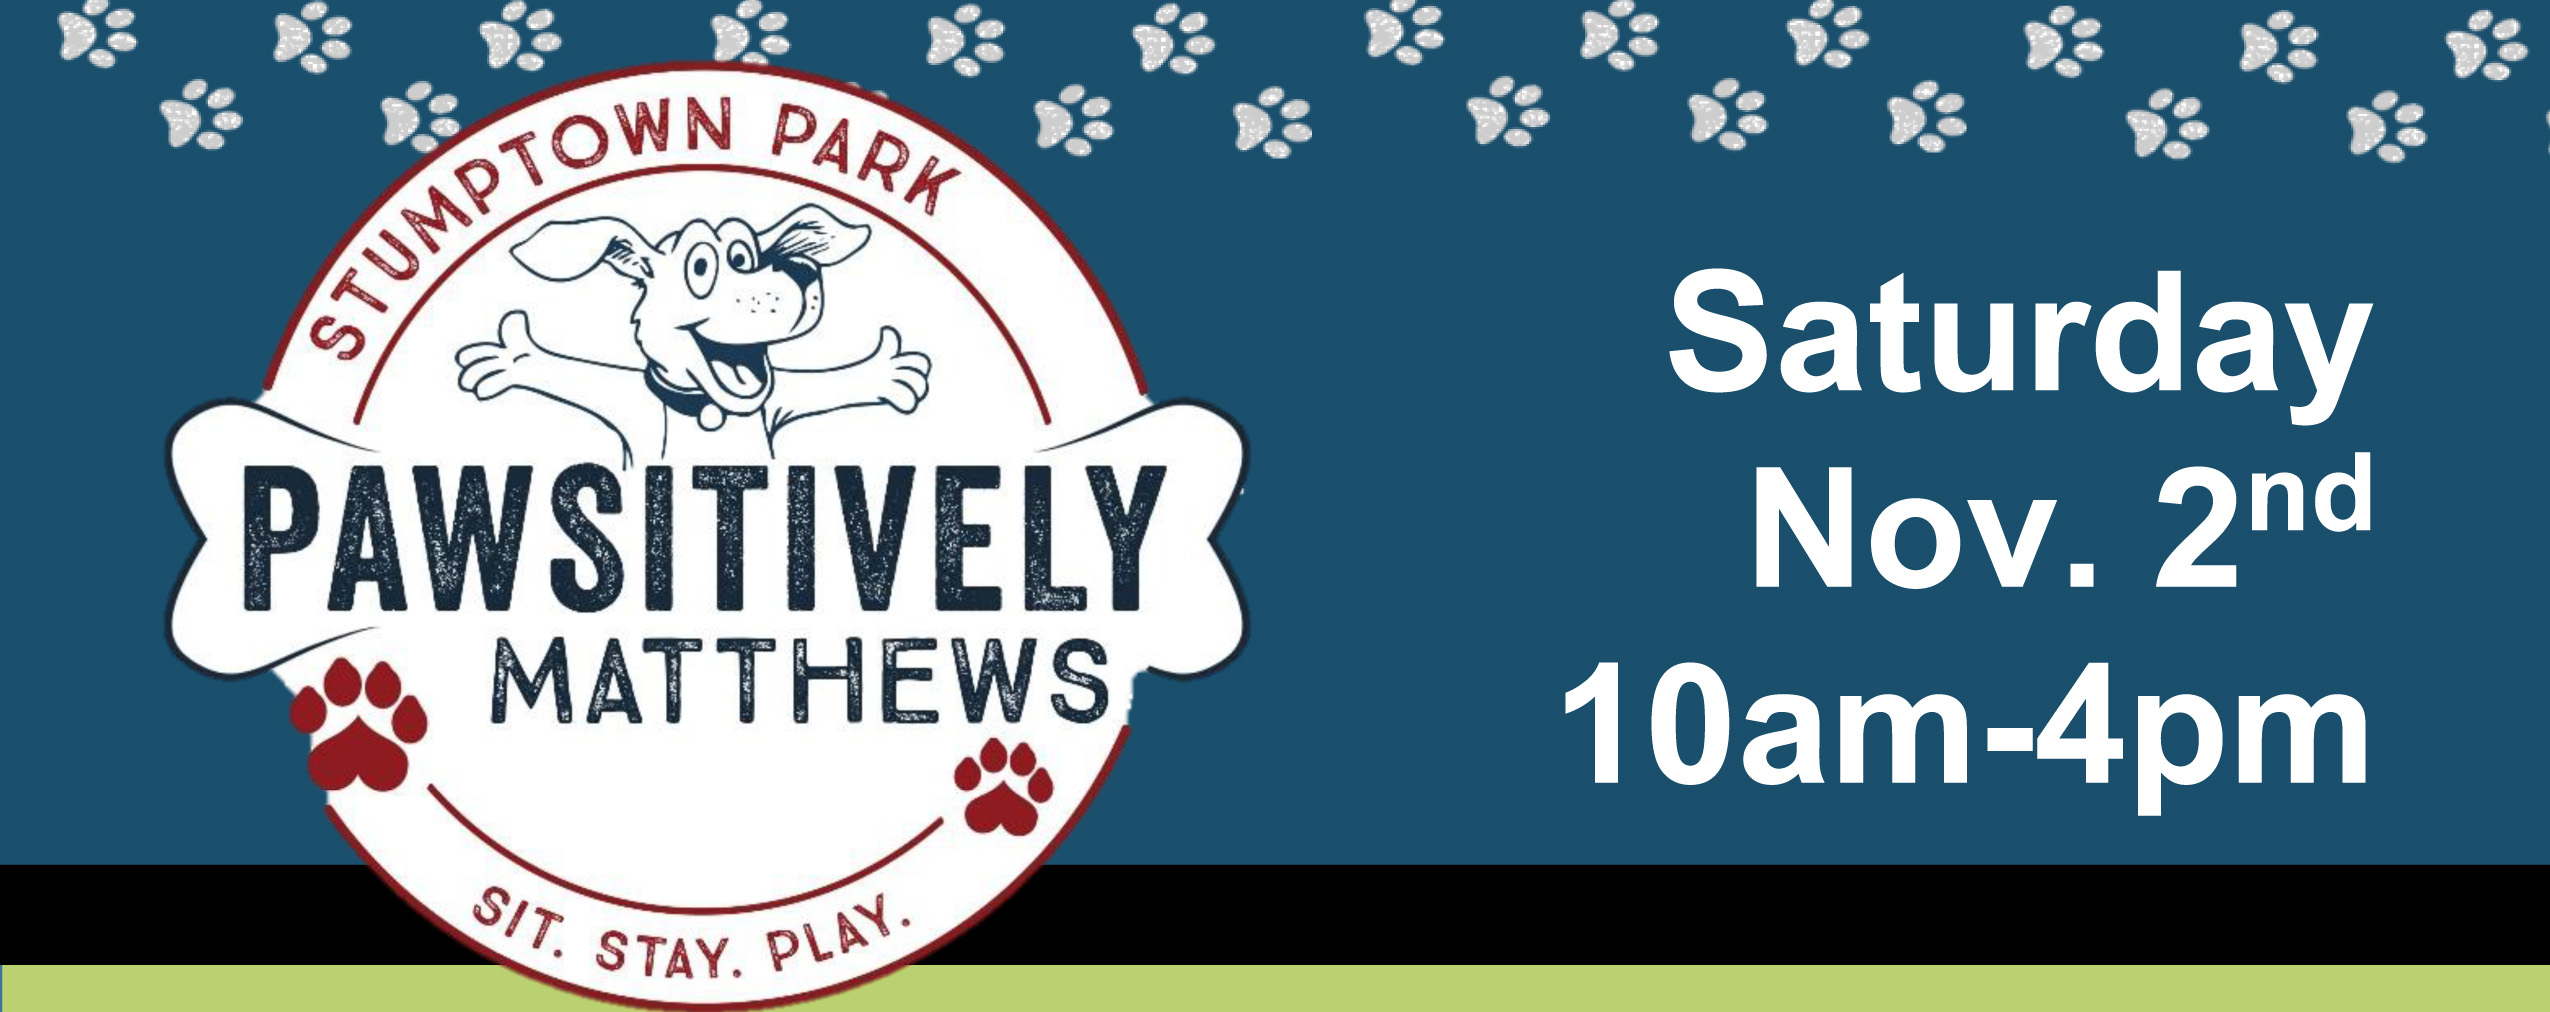 It's almost time for our annual Pawsitively Matthews event!